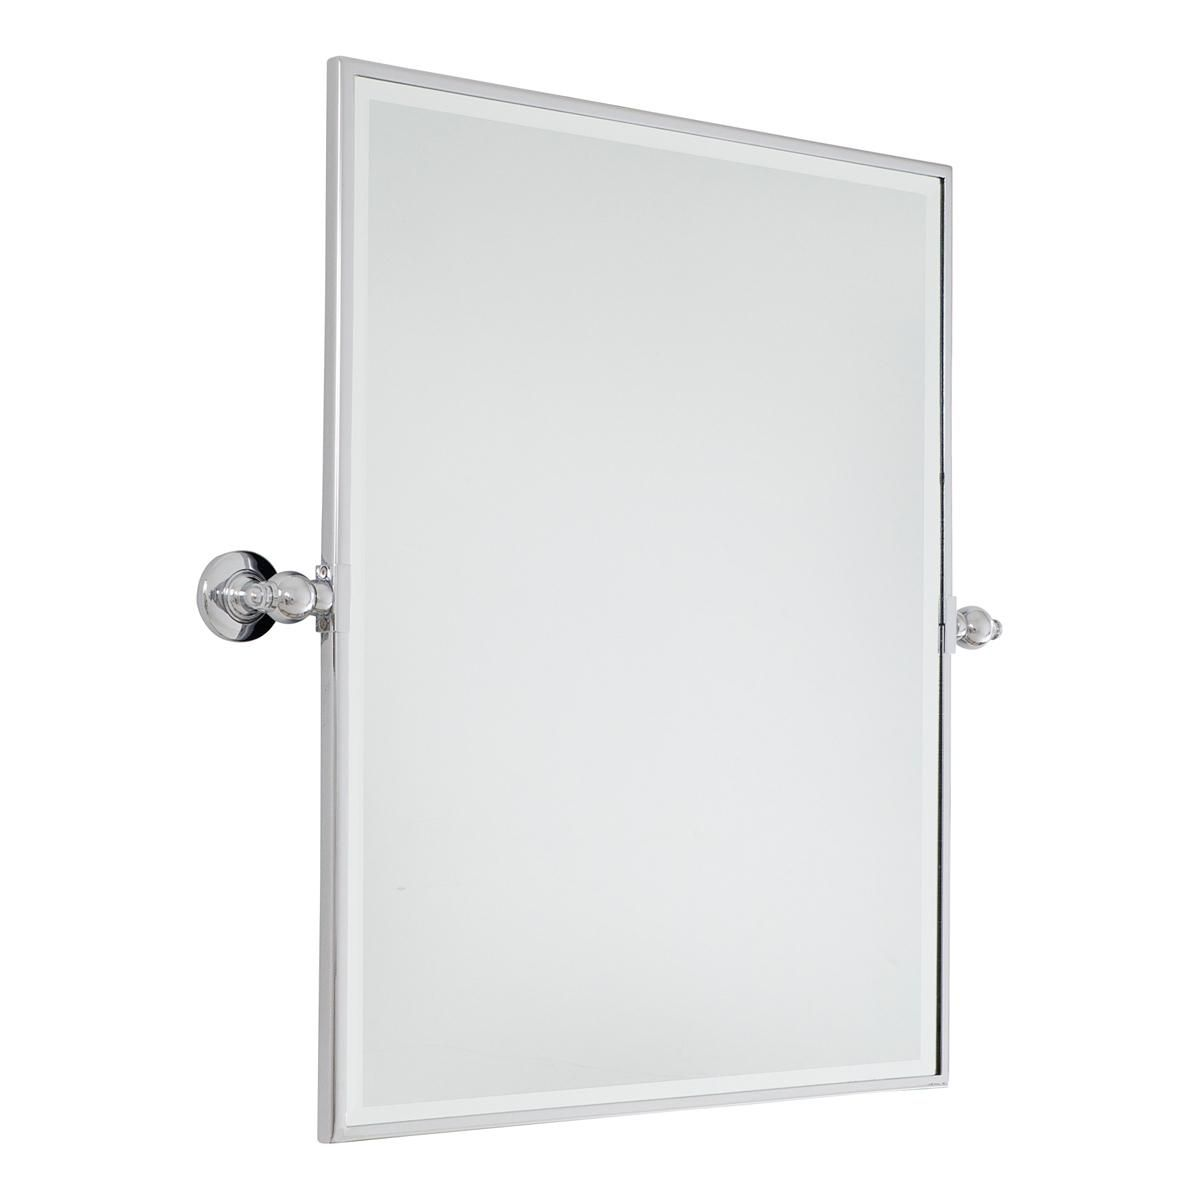 Rectangular Tilt Bathroom Mirror 3 Finishes Eichholtz 45x45 X D7cm Artnr 04019 Devon New York